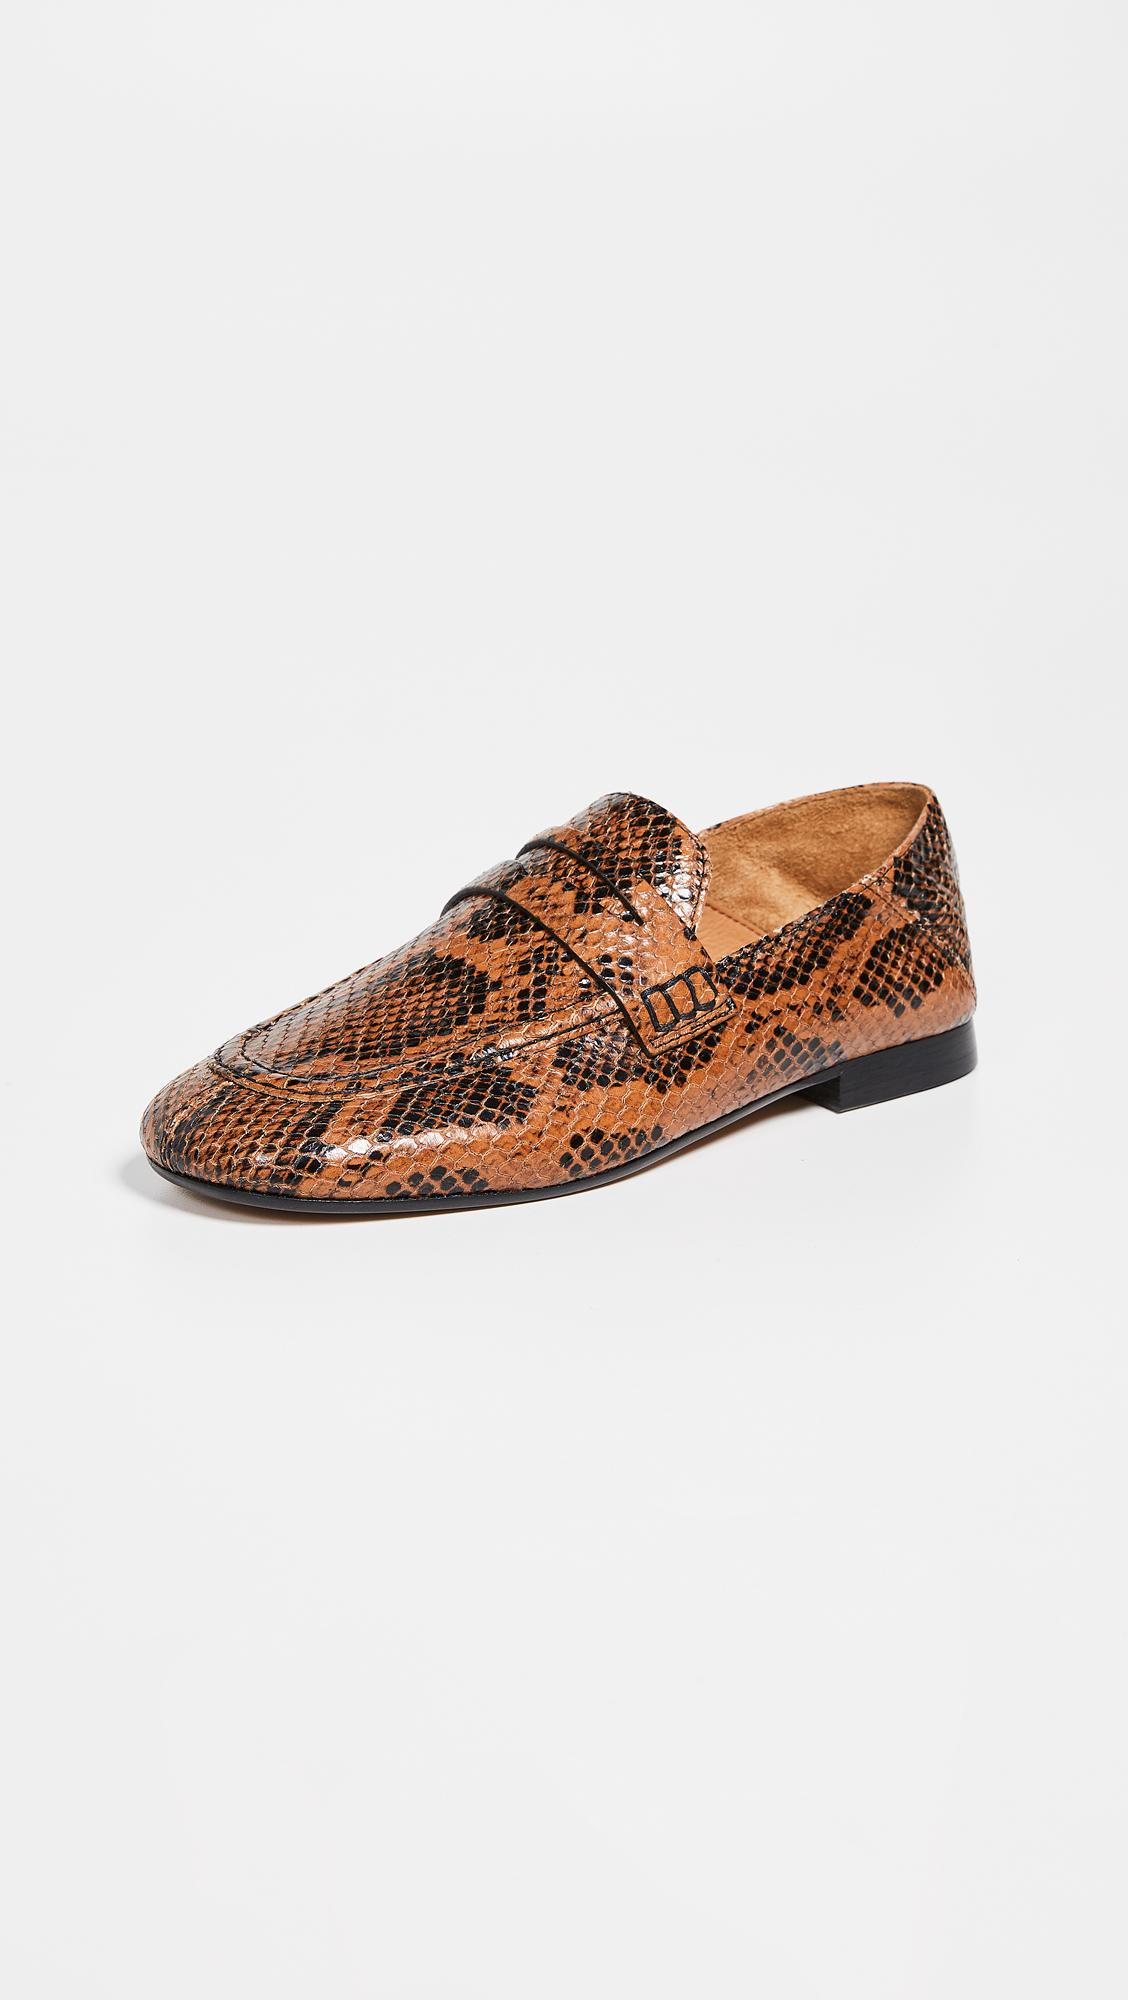 4ae10a4e458 Isabel Marant Fezzy Convertible Loafers in Brown - Lyst